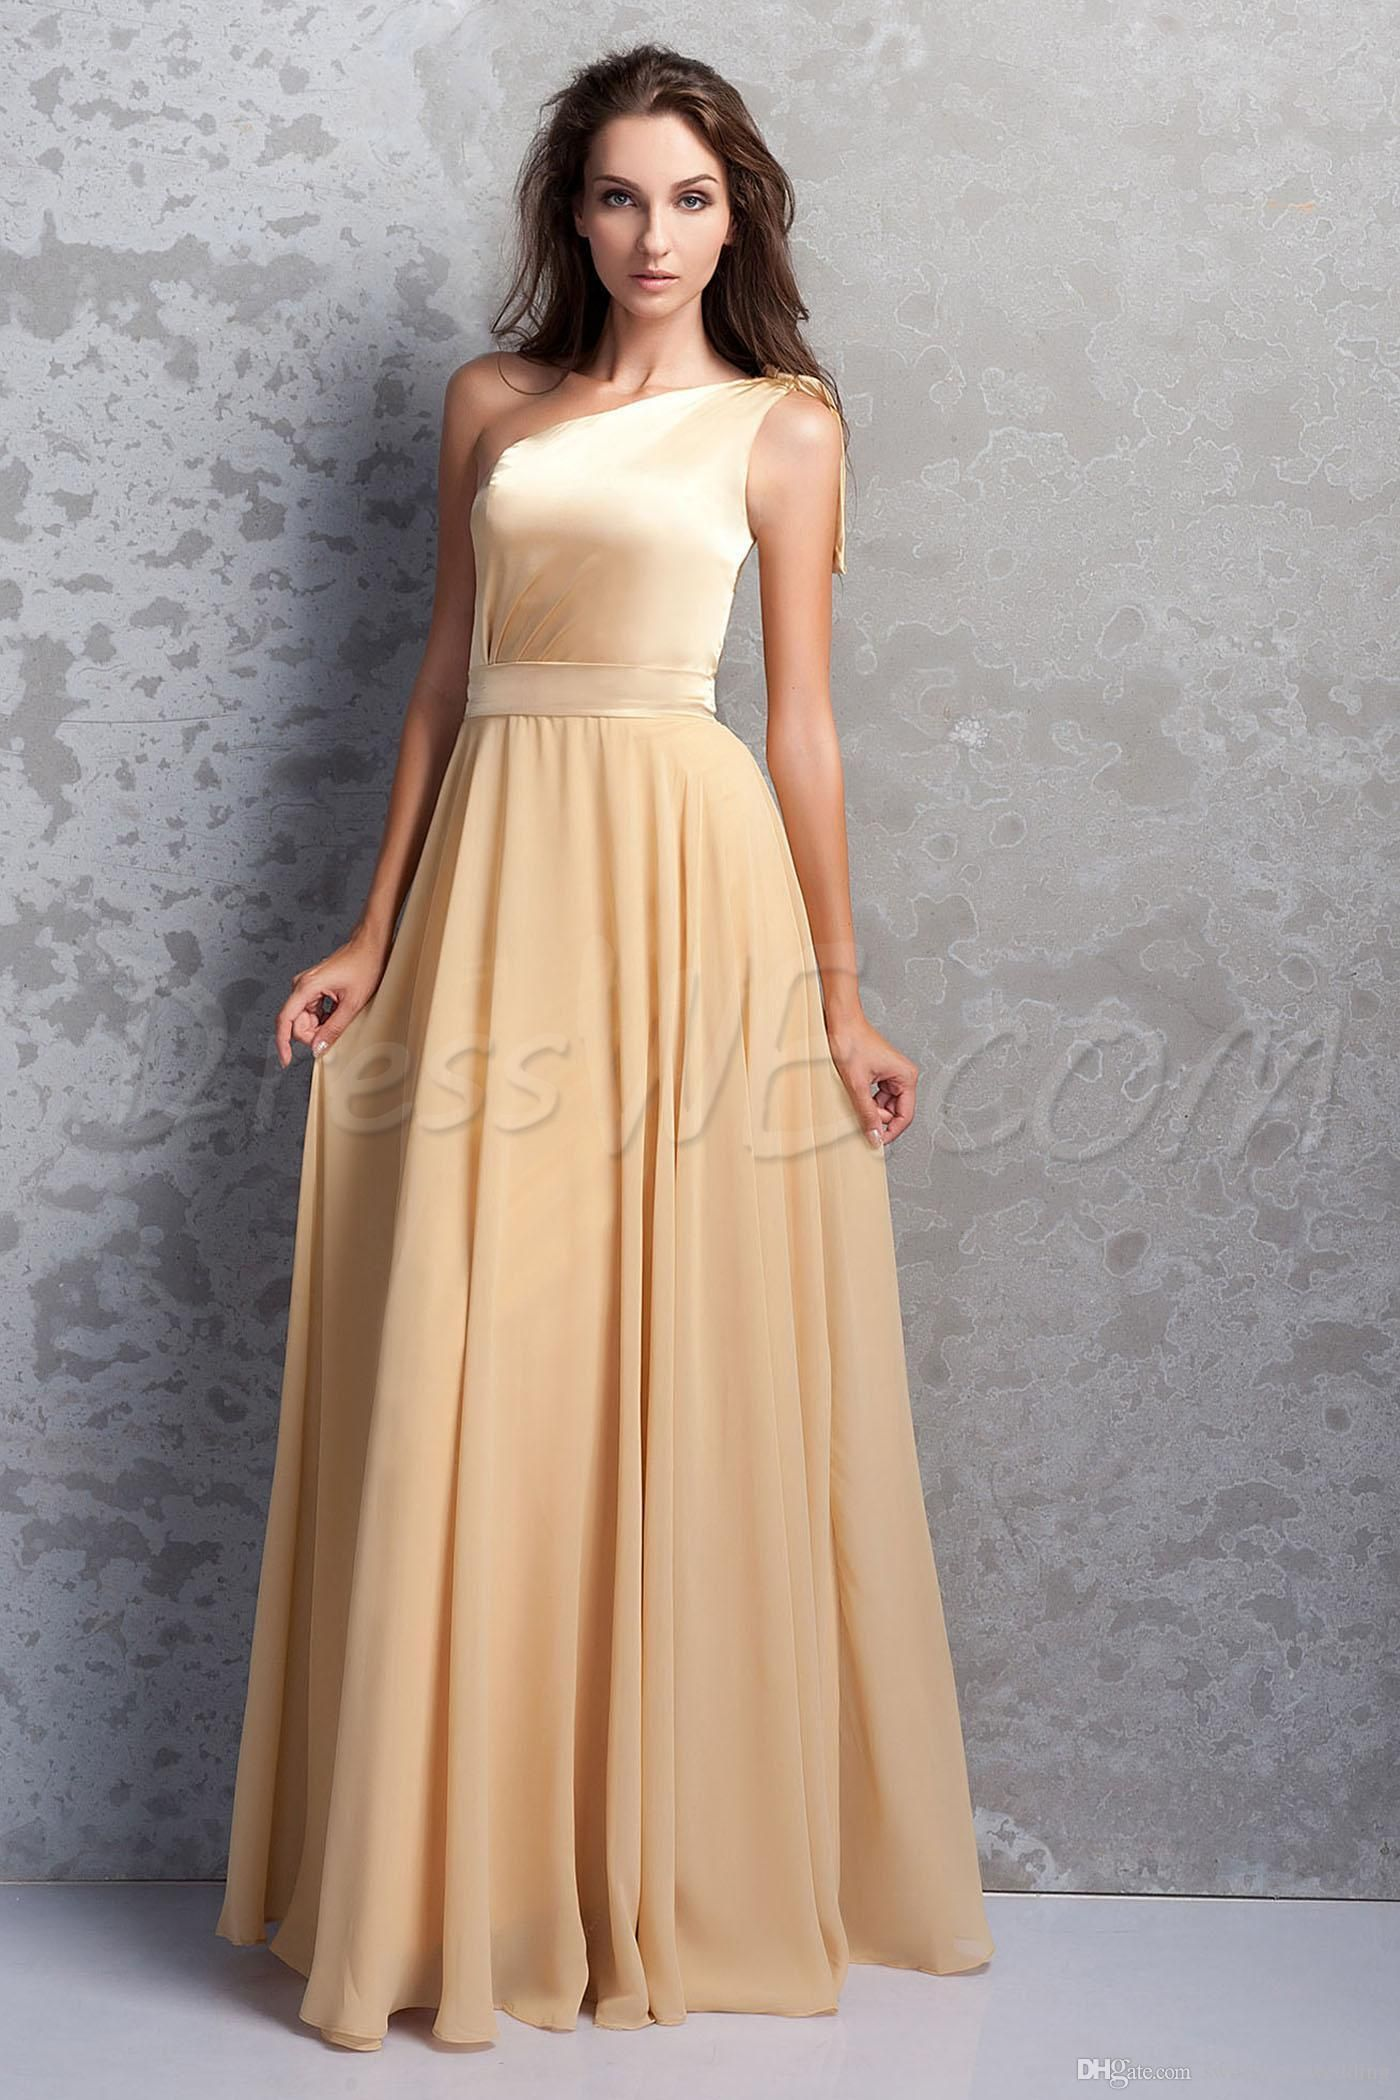 Bridesmaid dress covered shoulders gold google search bridal bridesmaid dress covered shoulders gold google search ombrellifo Gallery